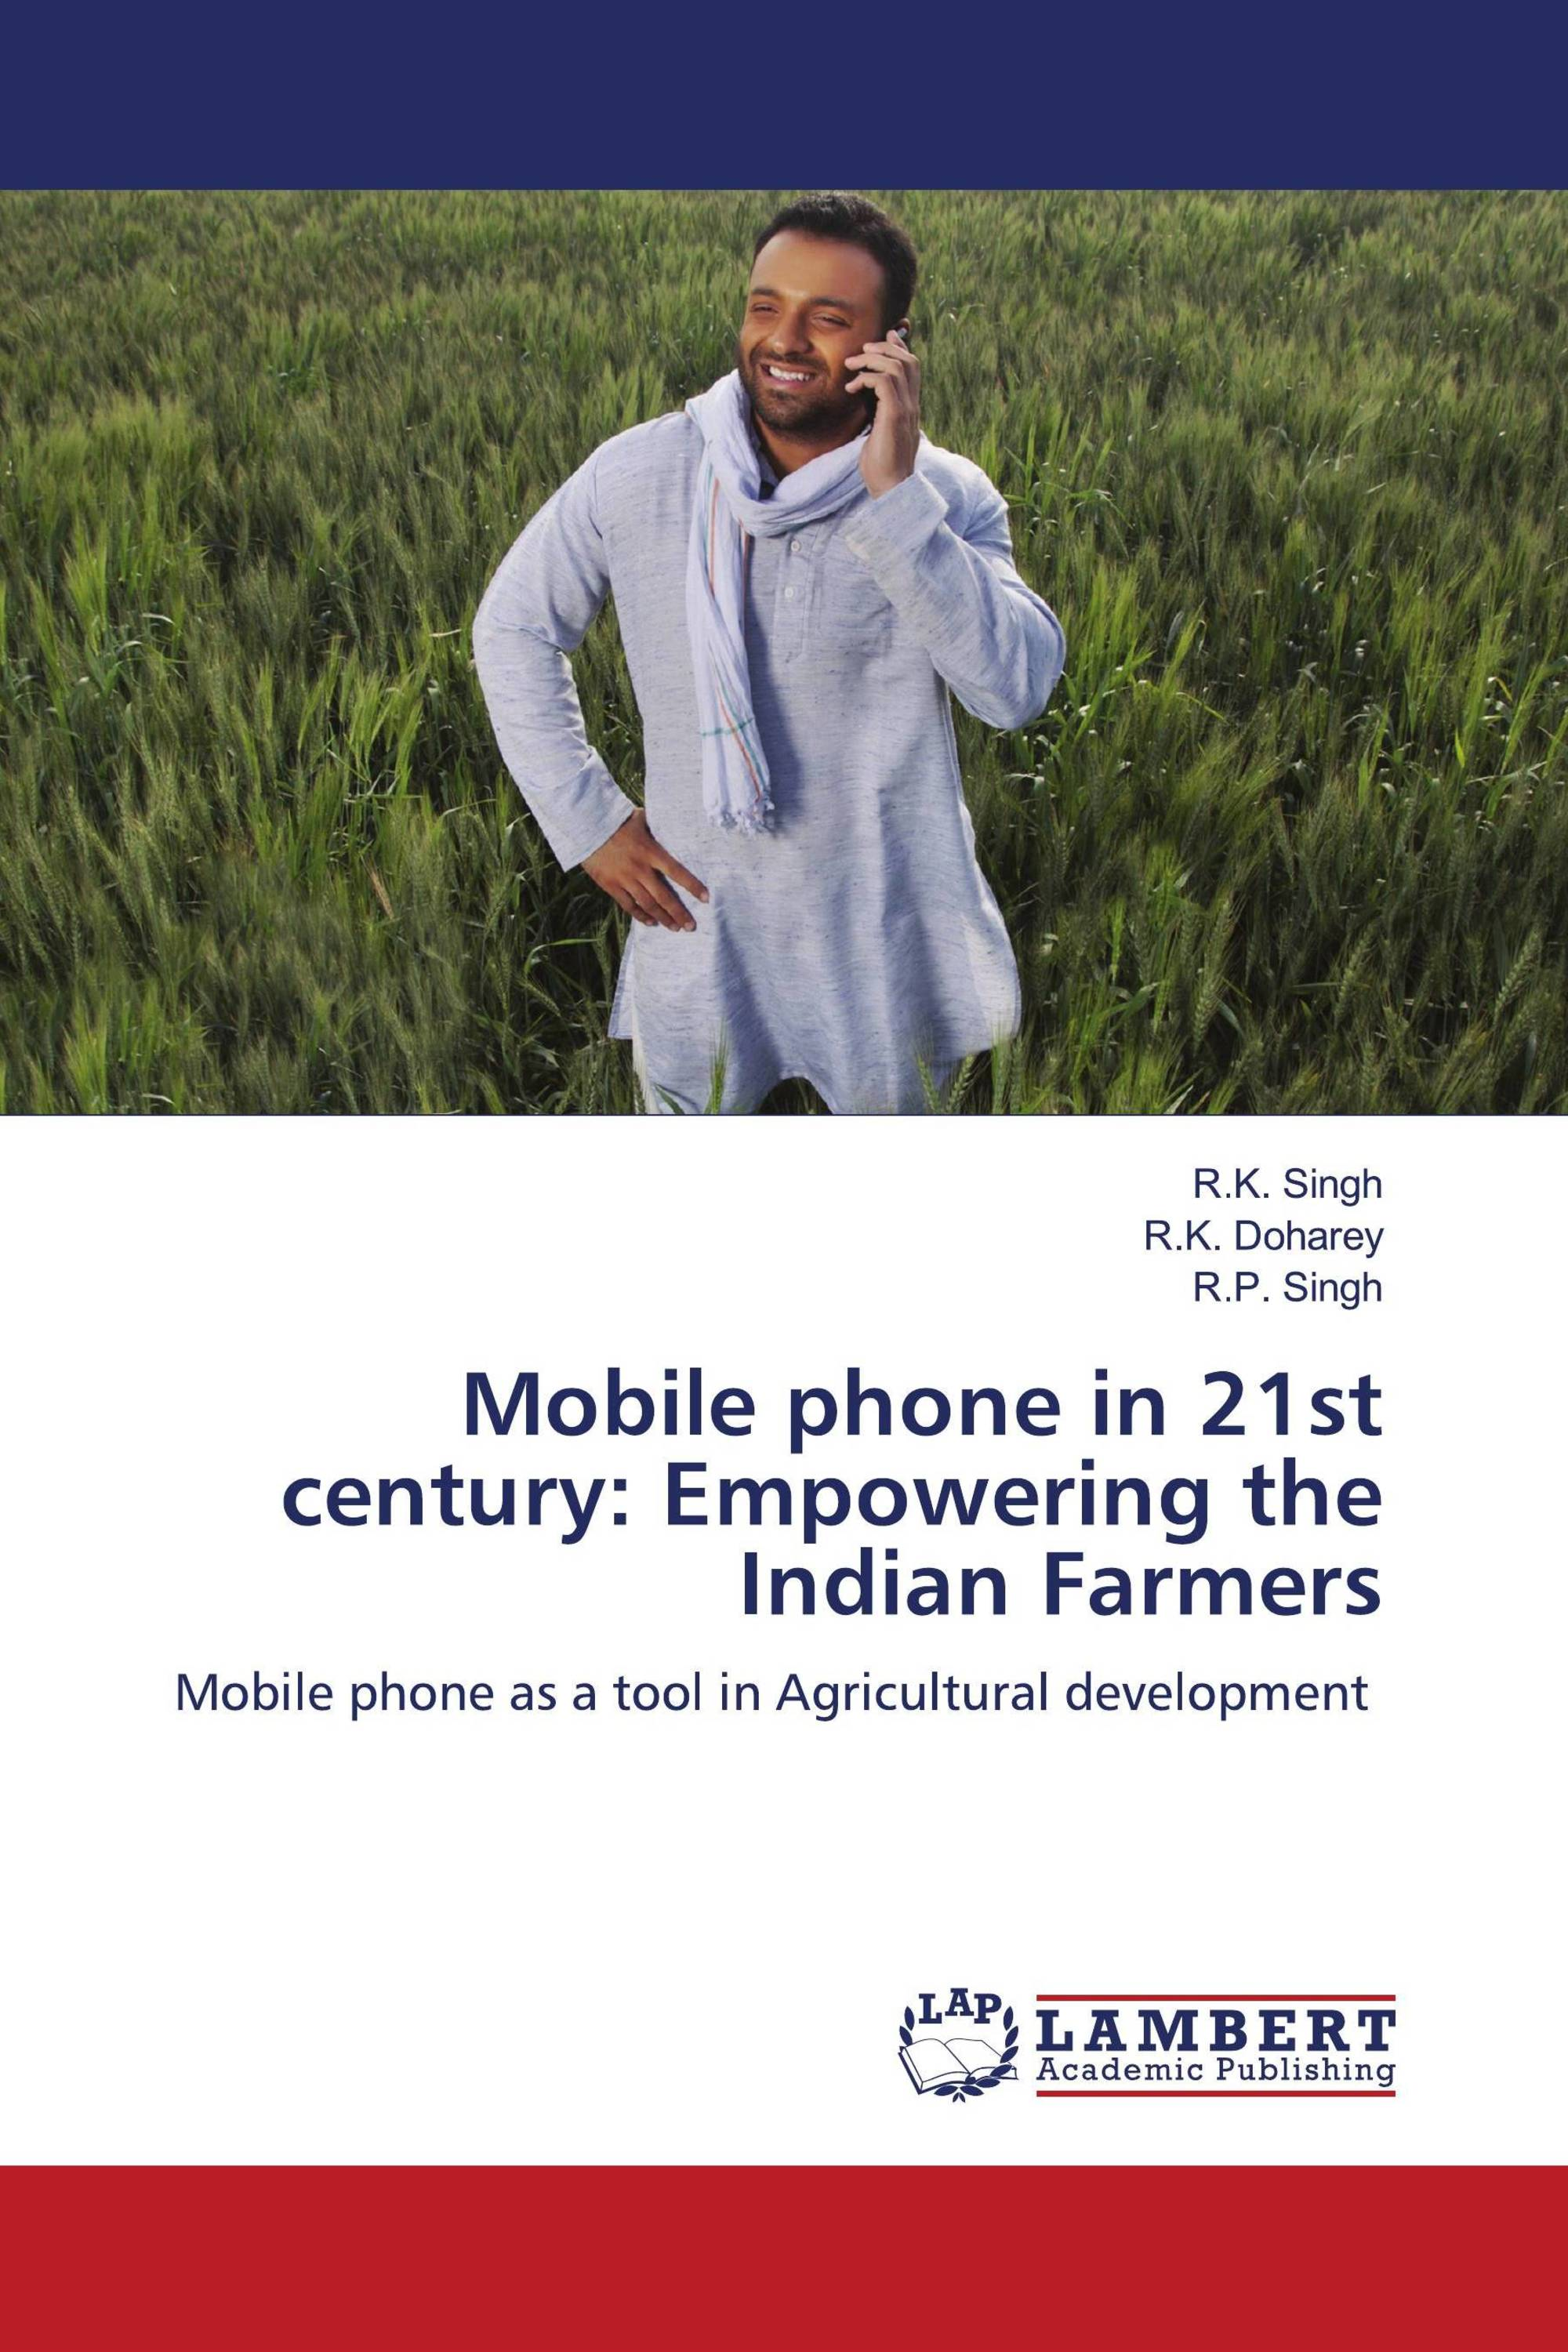 Mobile phone in 21st century: Empowering the Indian Farmers